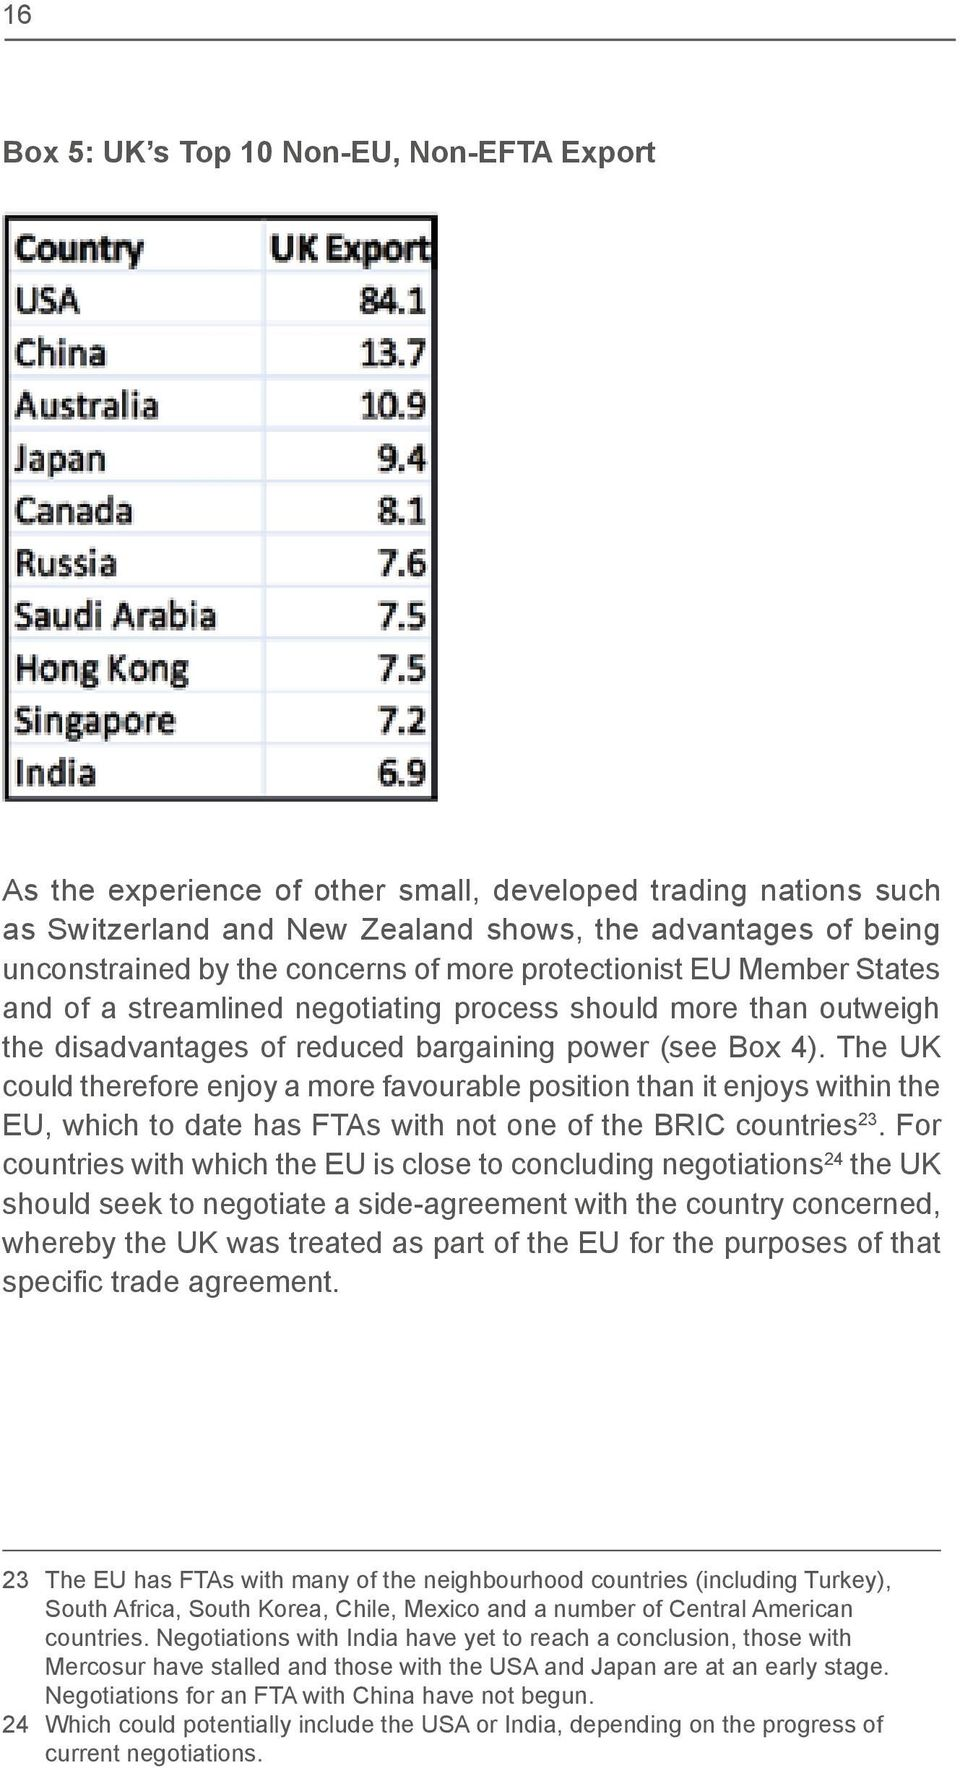 The UK could therefore enjoy a more favourable position than it enjoys within the EU, which to date has FTAs with not one of the BRIC countries 23.